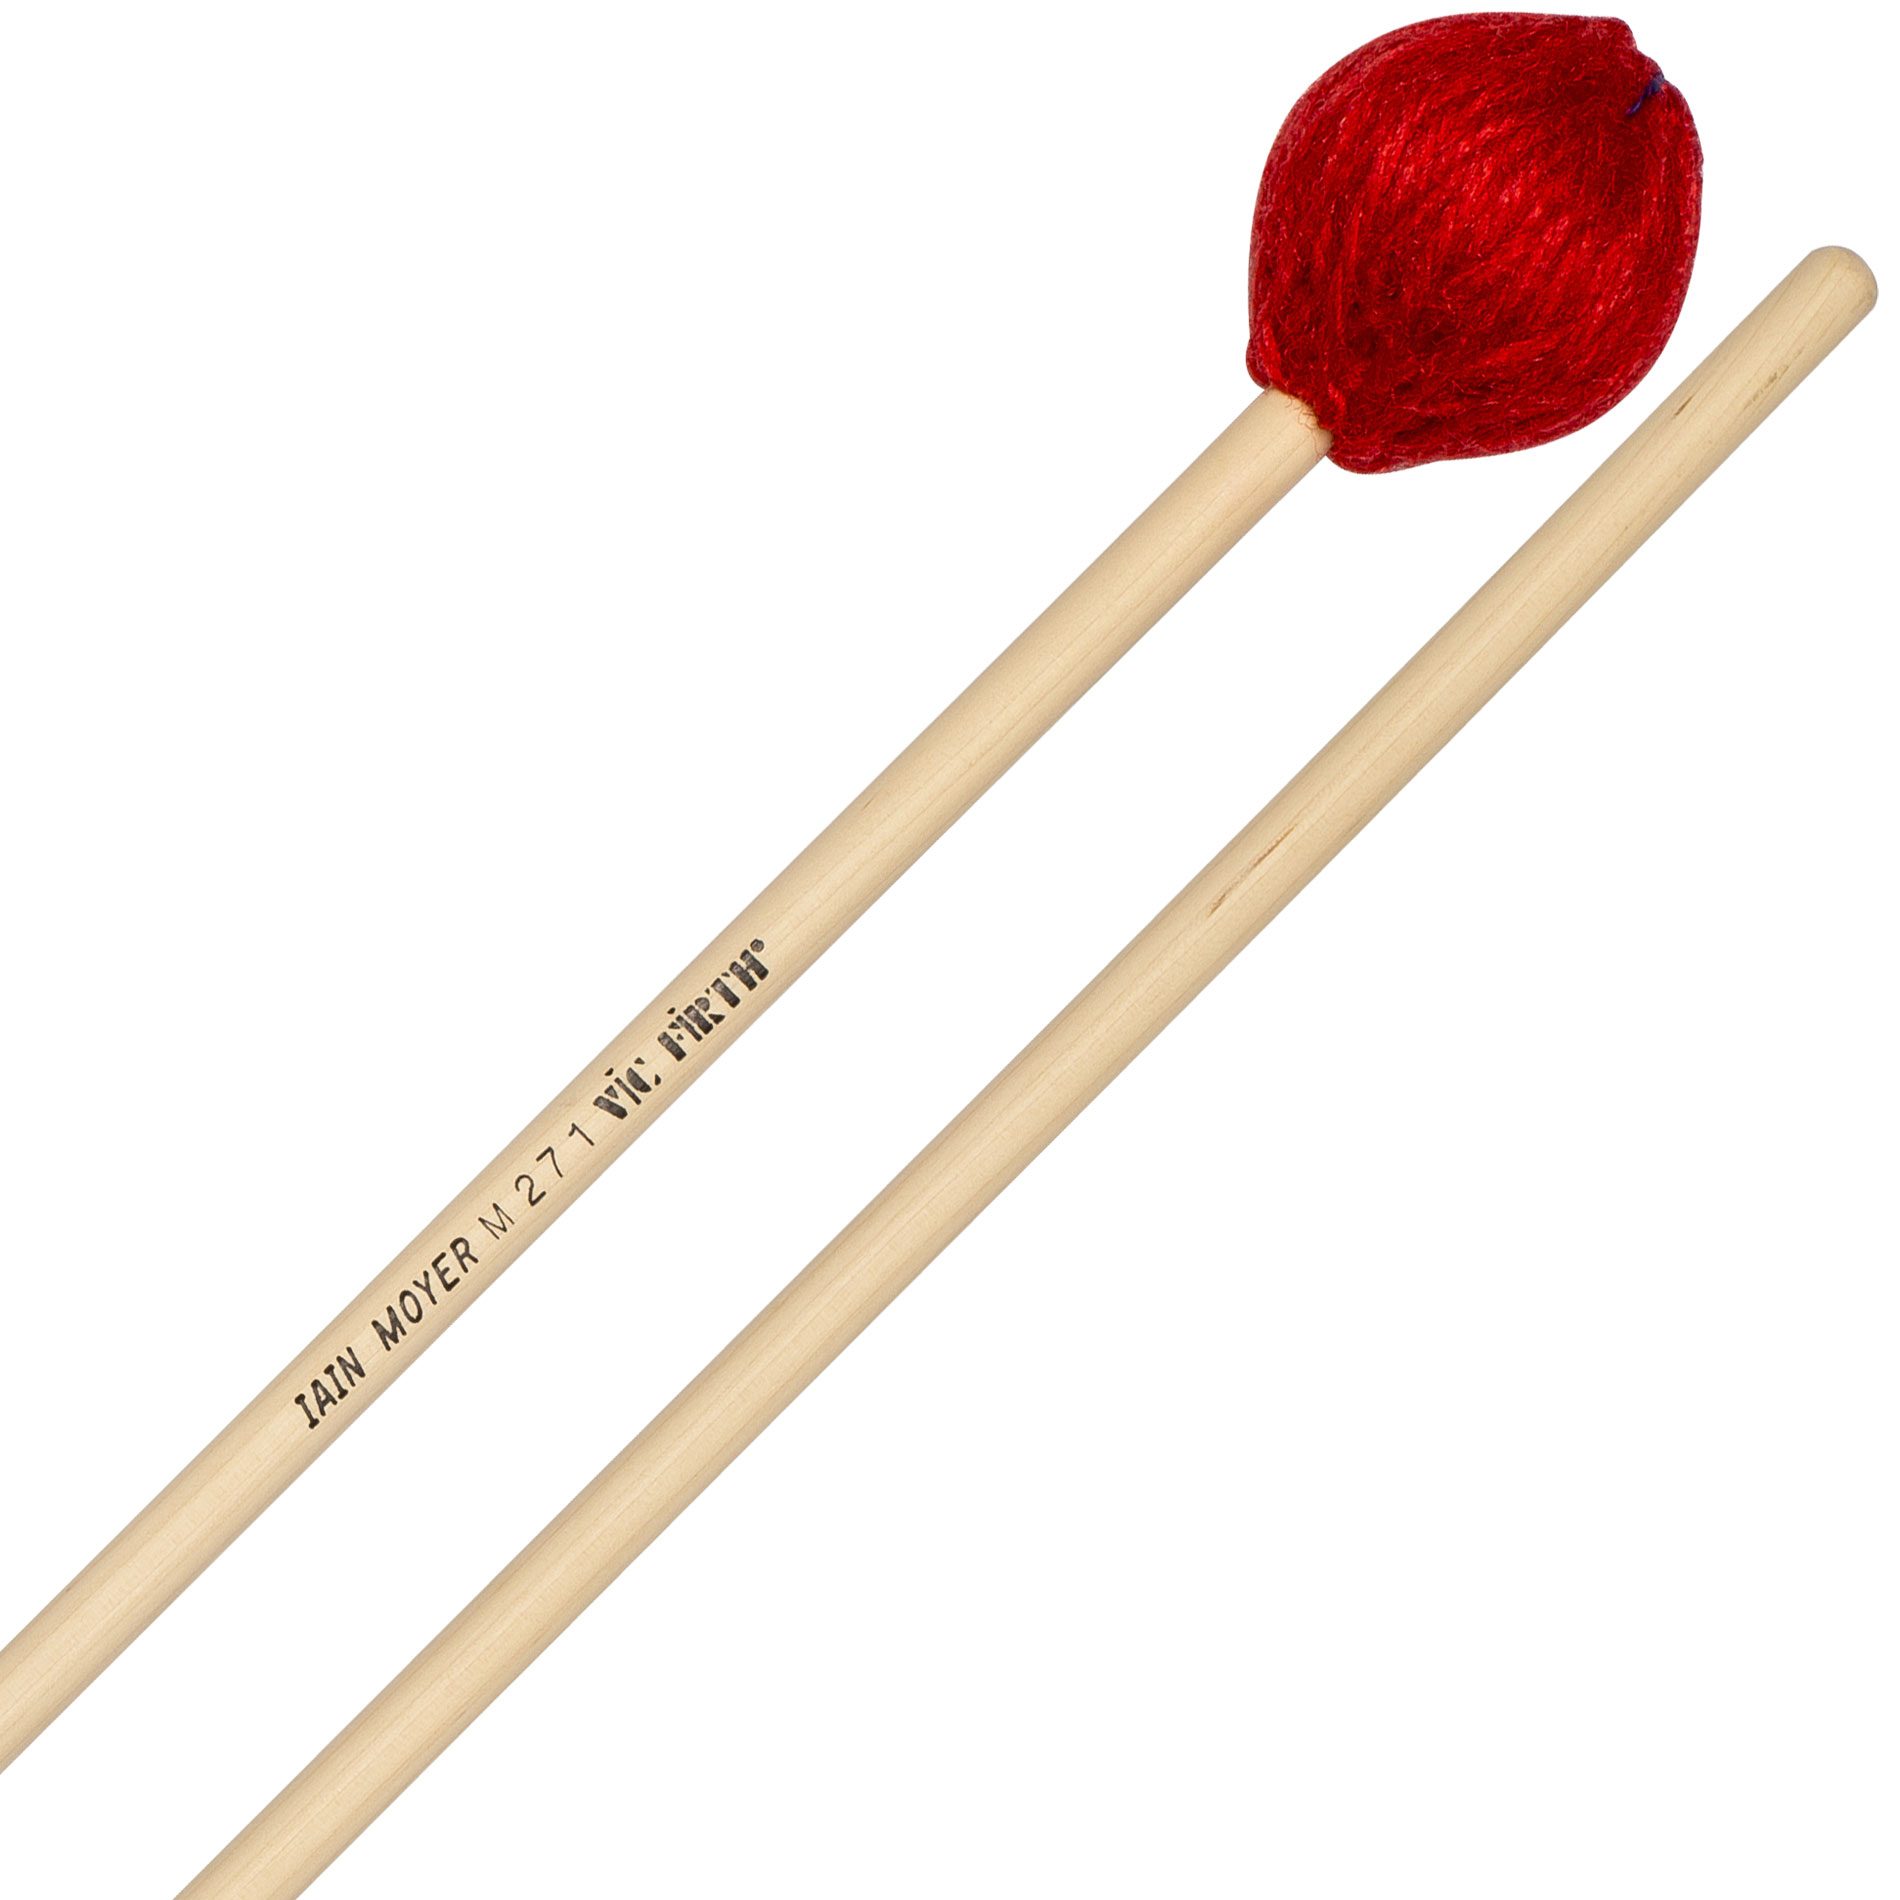 Vic Firth Corpsmaster Iain Moyer Signature Medium/Medium Hard Marimba Mallets